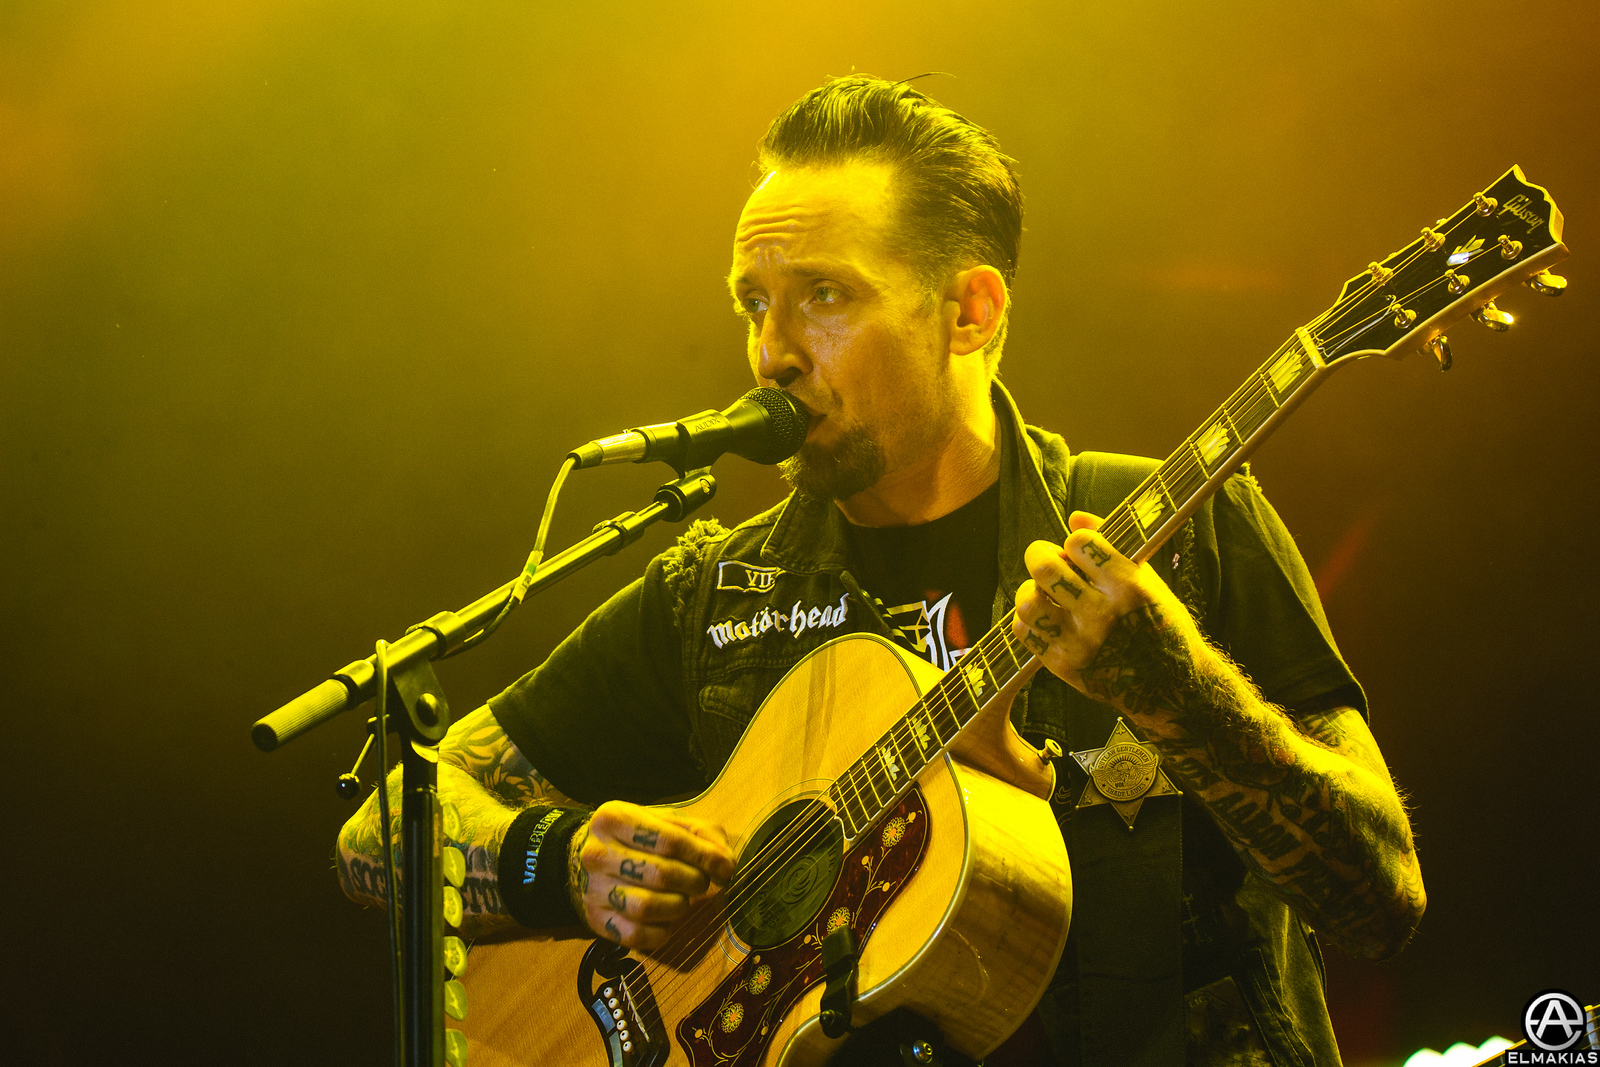 Volbeat live at Open Air Gampel Festival in Switzerland